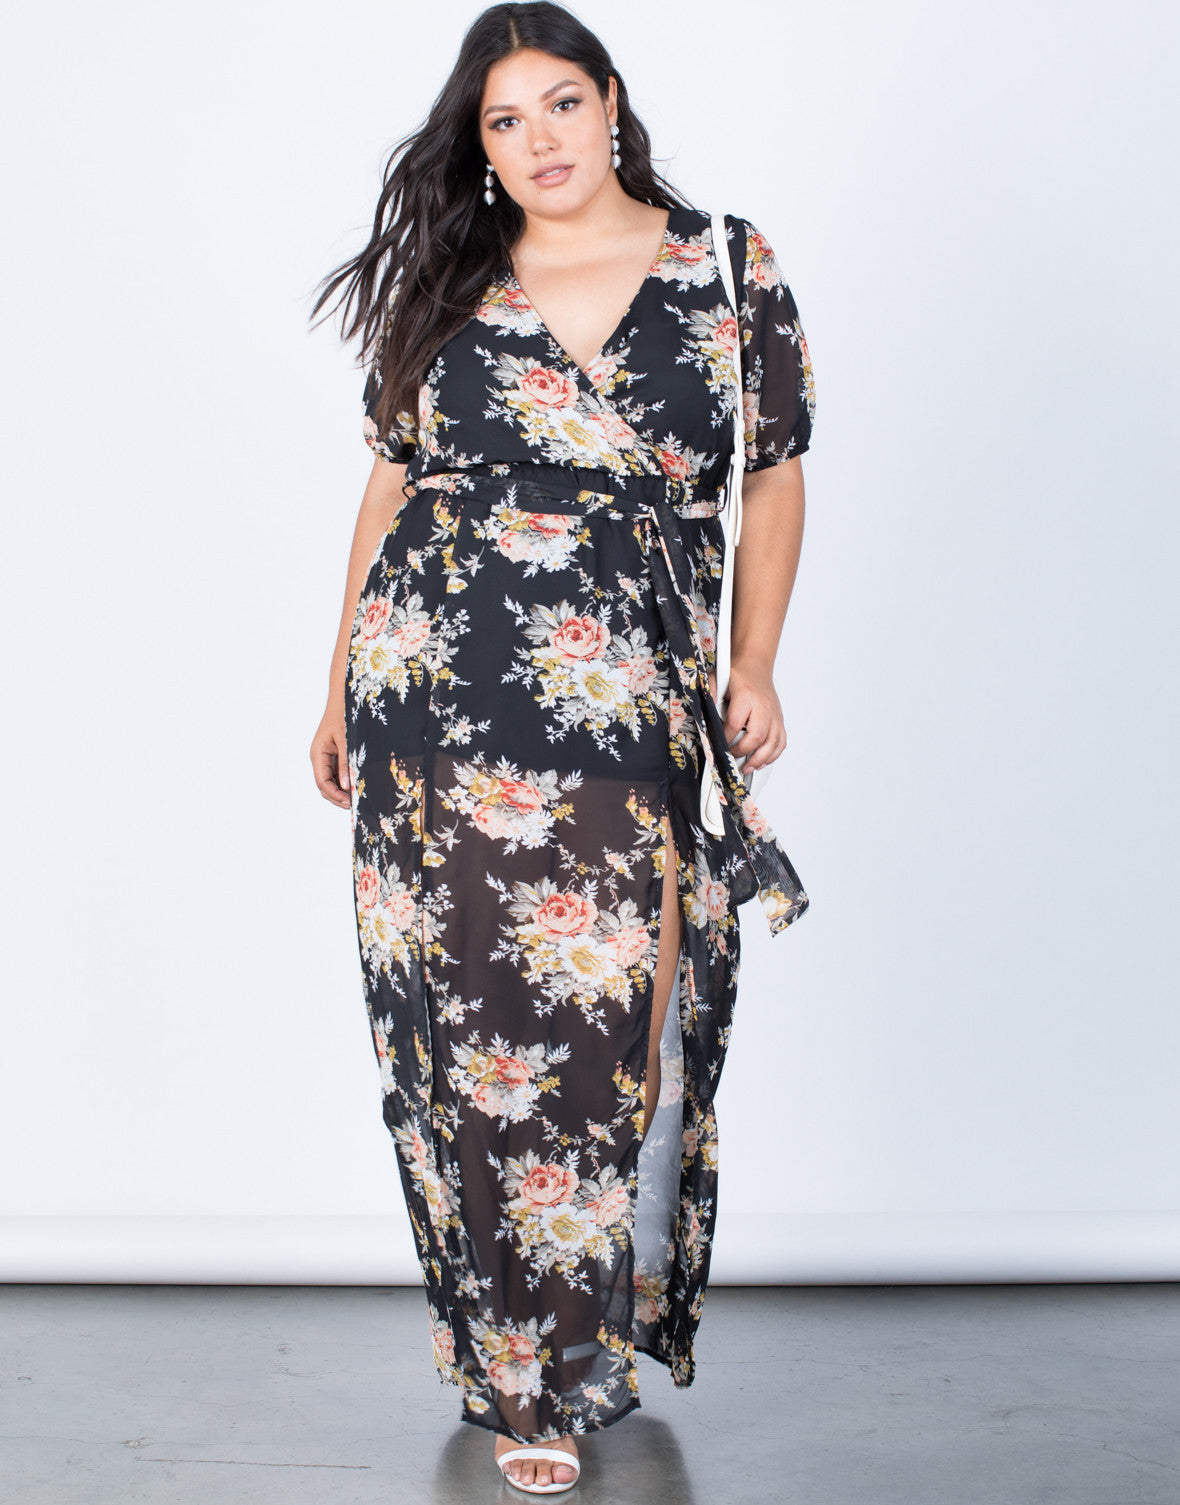 Black Plus Size Floral Paradise Dress - Front View